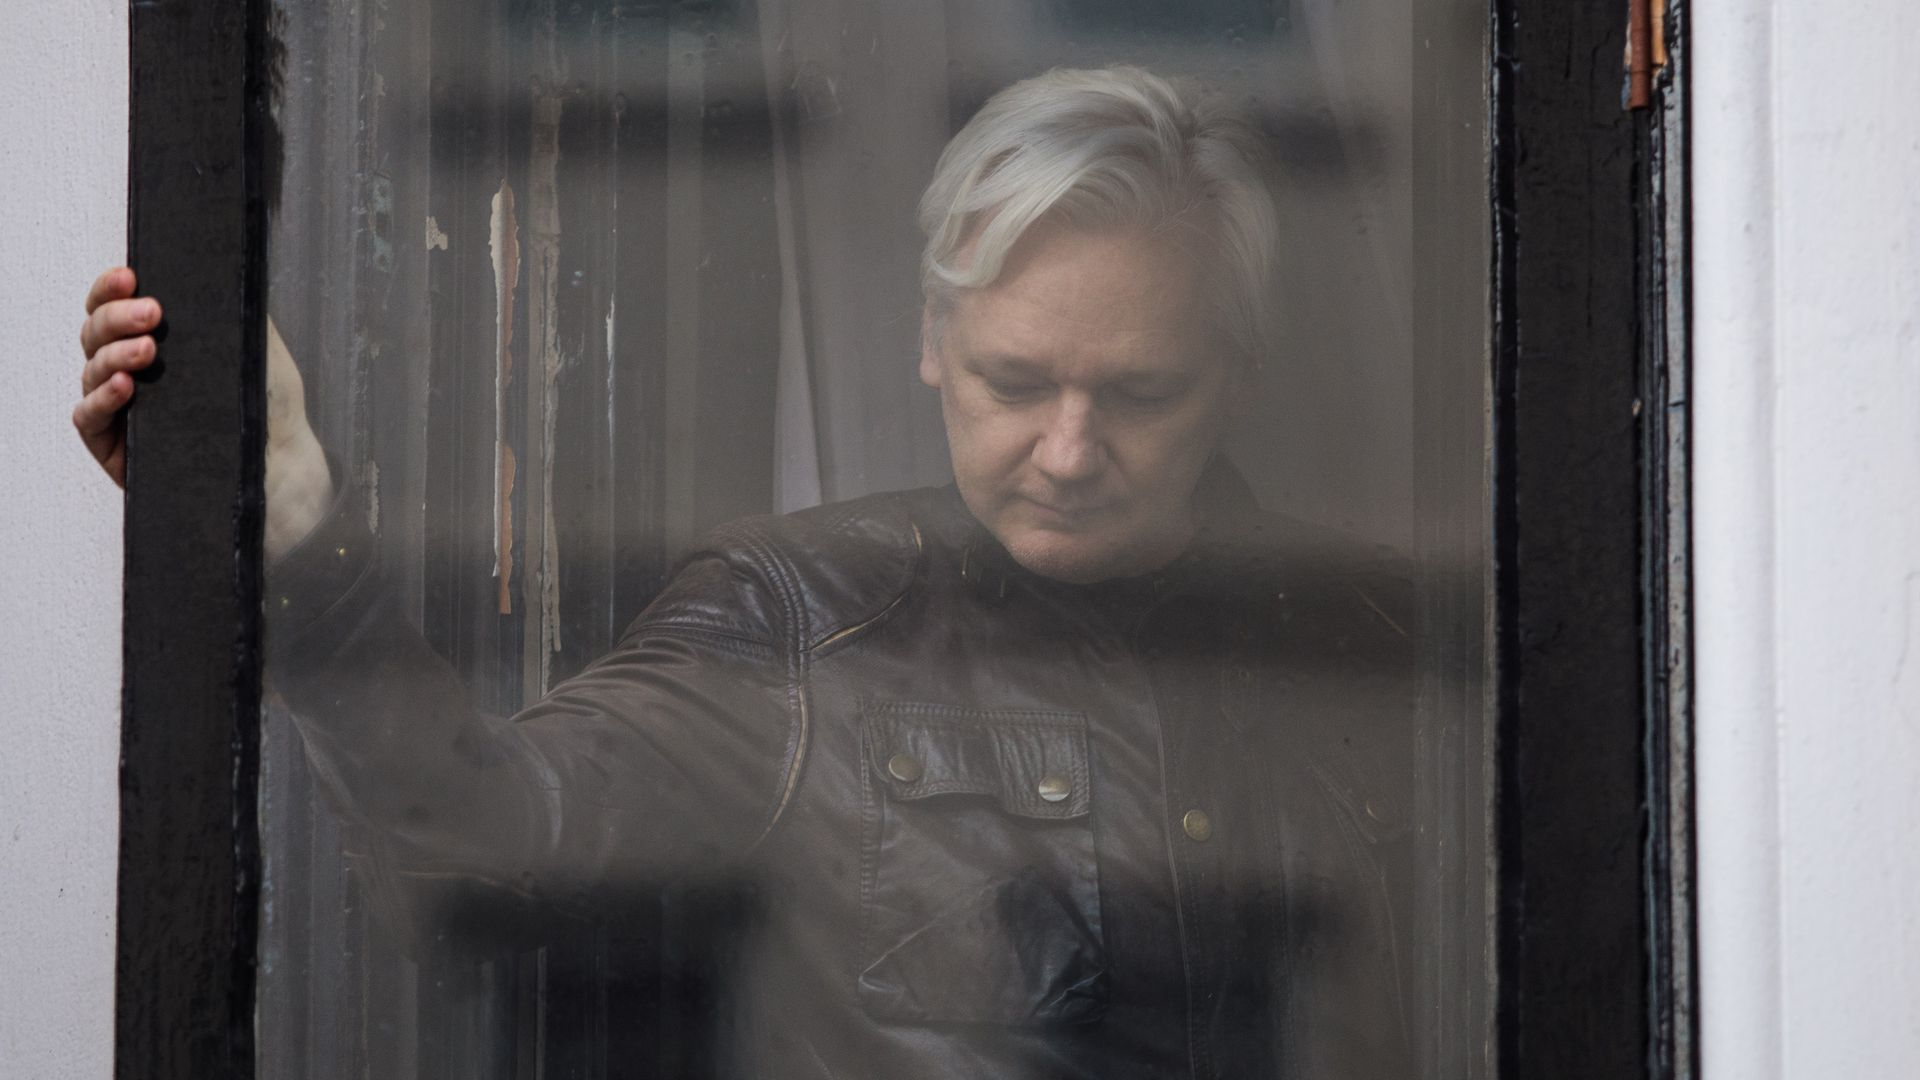 Julian Assange seen through a window, looking down.